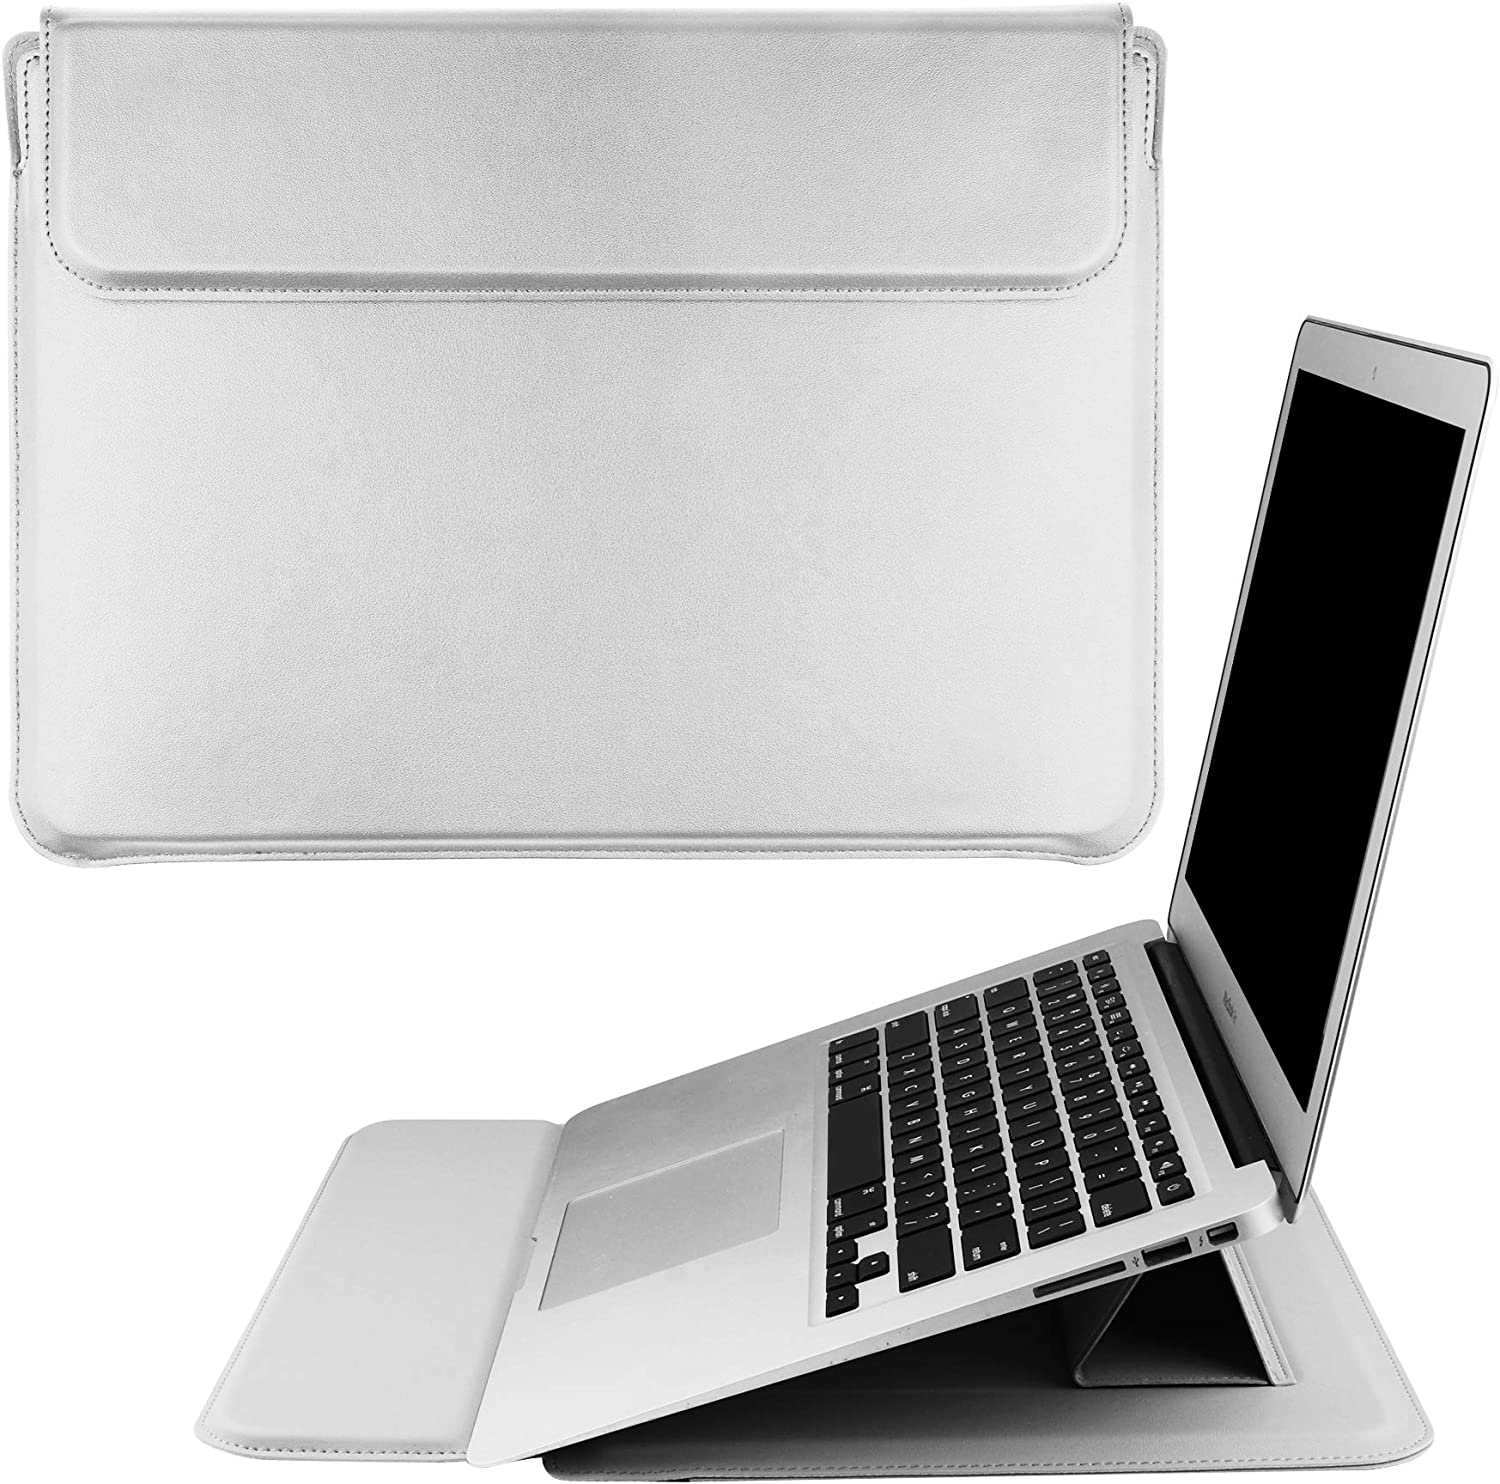 DICOLLAS 13.3 Inch Laptop Sleeve for 13-inch MacBook Air M1/A2337 A2179 A1932 2018-2021, MacBook Pro M1/A2338 A2251 A2289 2016-2021, 360 Protective Case for 12.9 iPad Pro 5th/4th/3rd Gen, Dell XPS 13